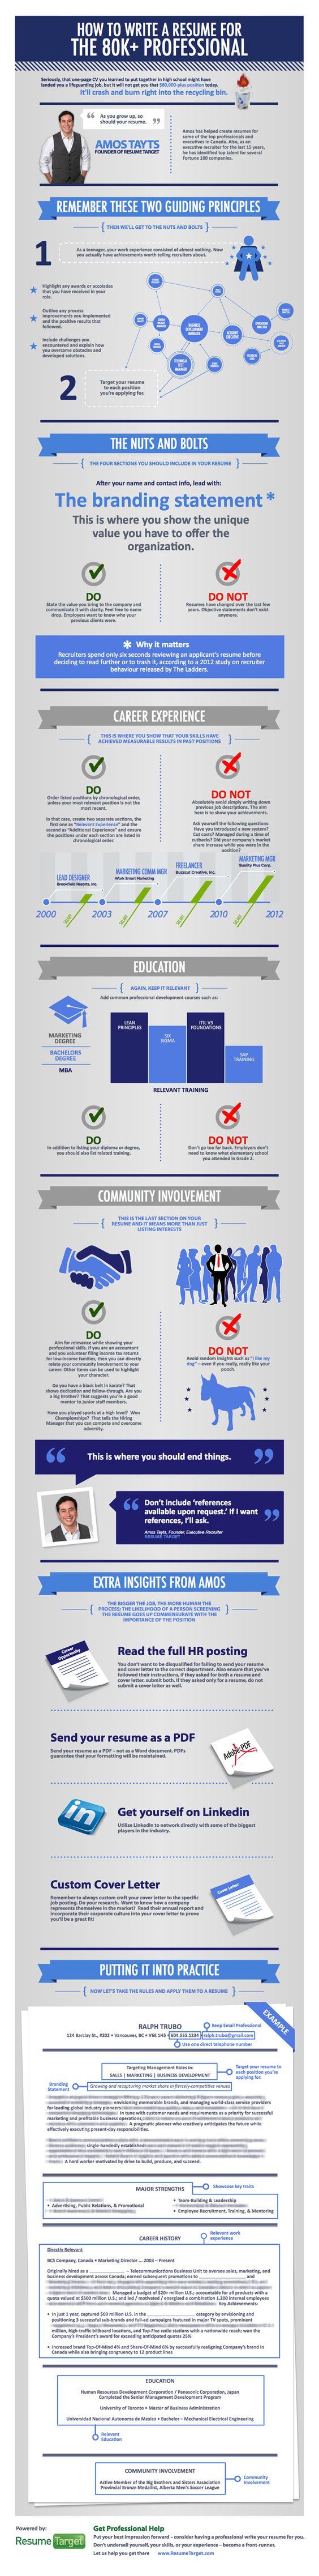 How To Write A Resume For The $80k Professional #Infographic #HowTo #Resume